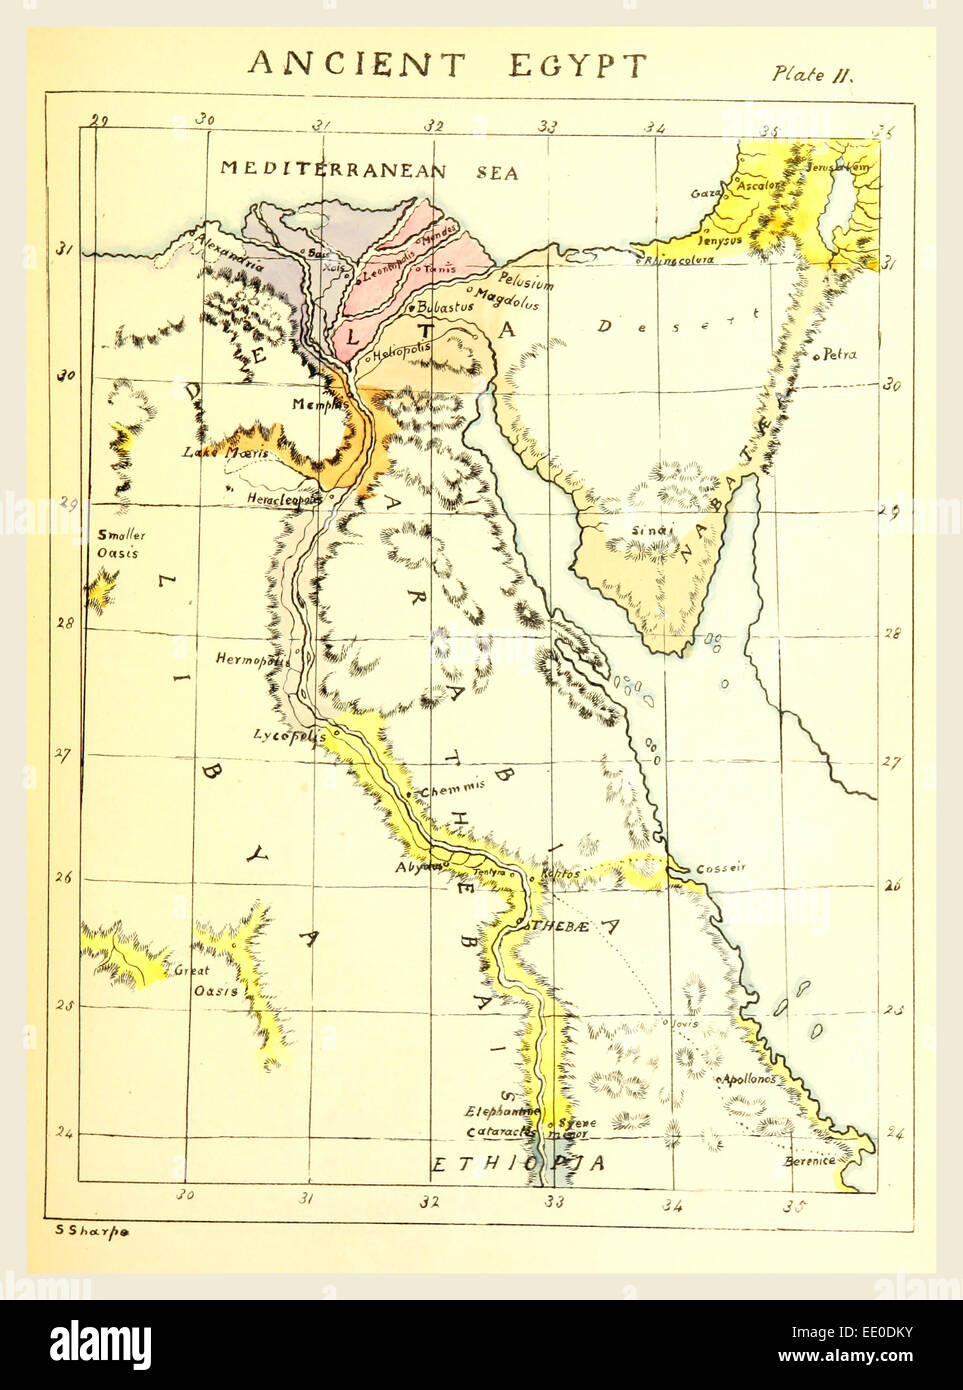 Map Ancient Egypt, 19th century engraving Stock Photo ... on map of dumah, map of magog, map of shinar, map of togarmah, map of hebrews, map of ishmaelites, map of cush, map of michmash, map of kingdom of kush, map of moreh, map of ham, map of aroer, map of japheth, map of aram, map of shem, map of nahor,